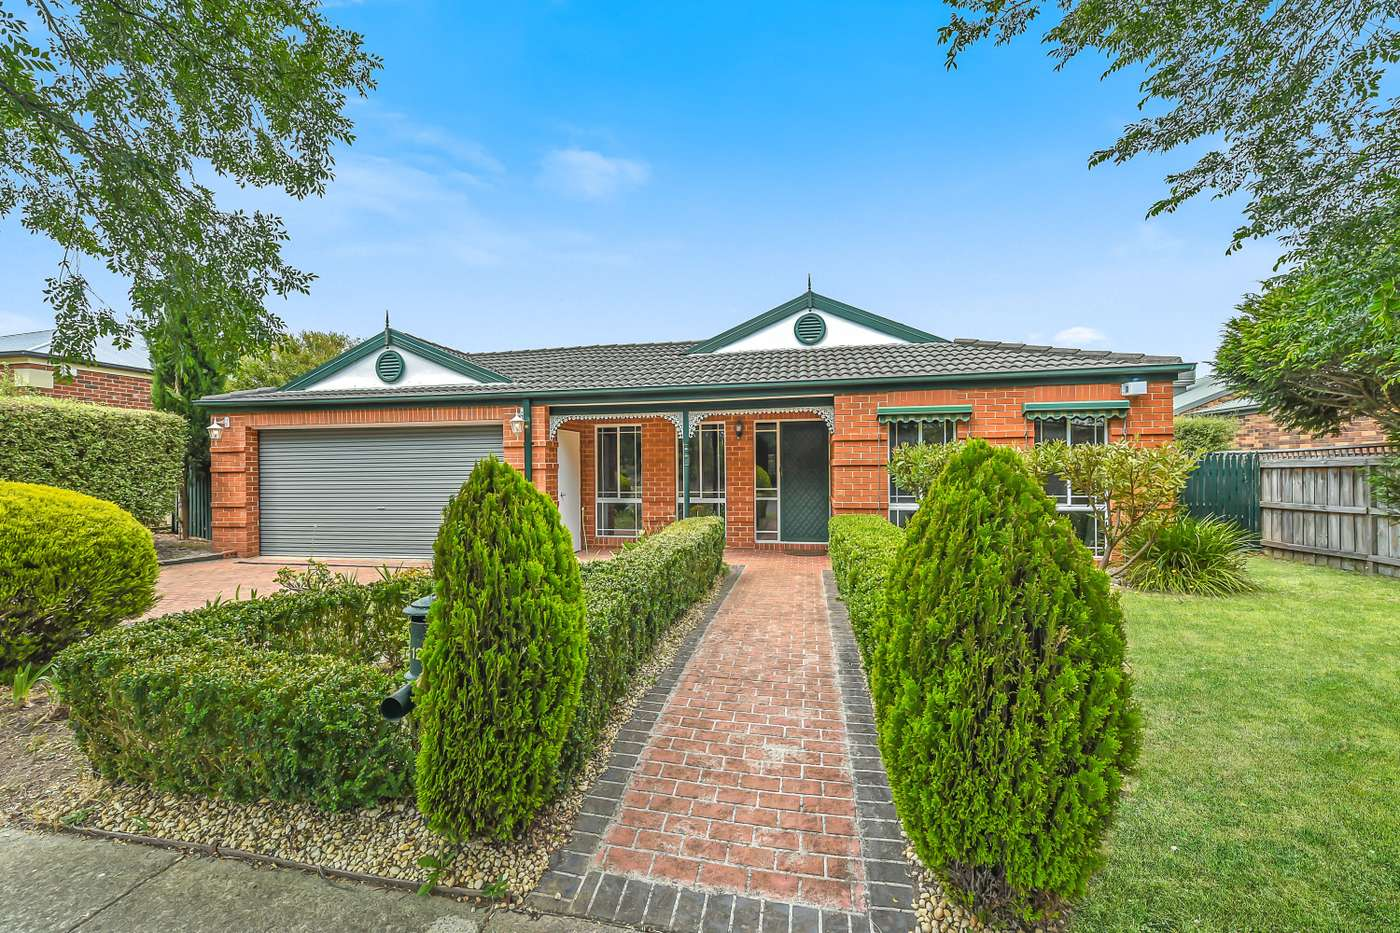 Main view of Homely house listing, 12 Ardblair Terrace, Narre Warren South, VIC 3805